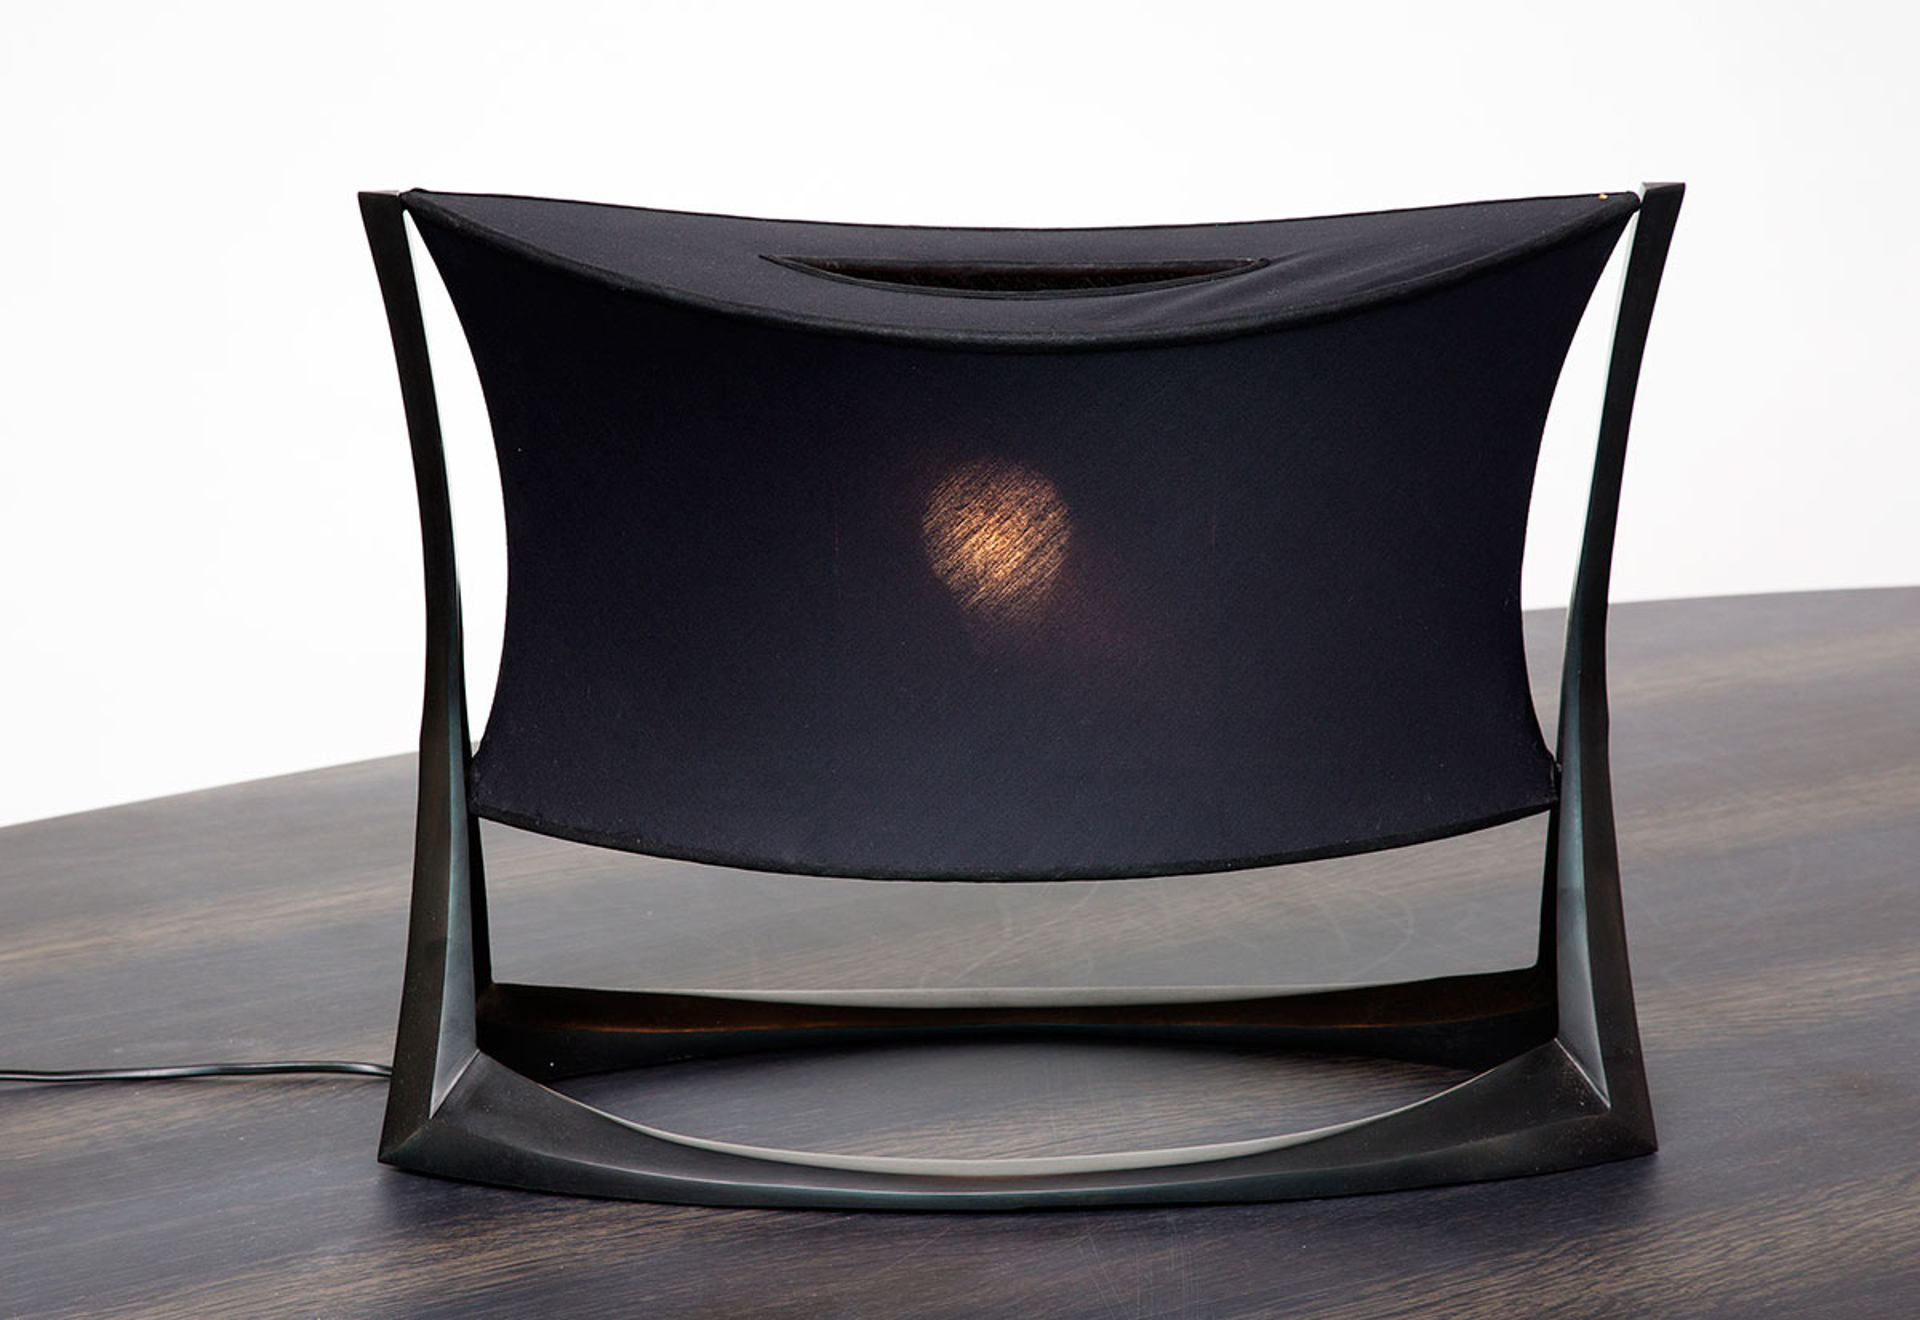 Large lamp by Anasthasia Millot